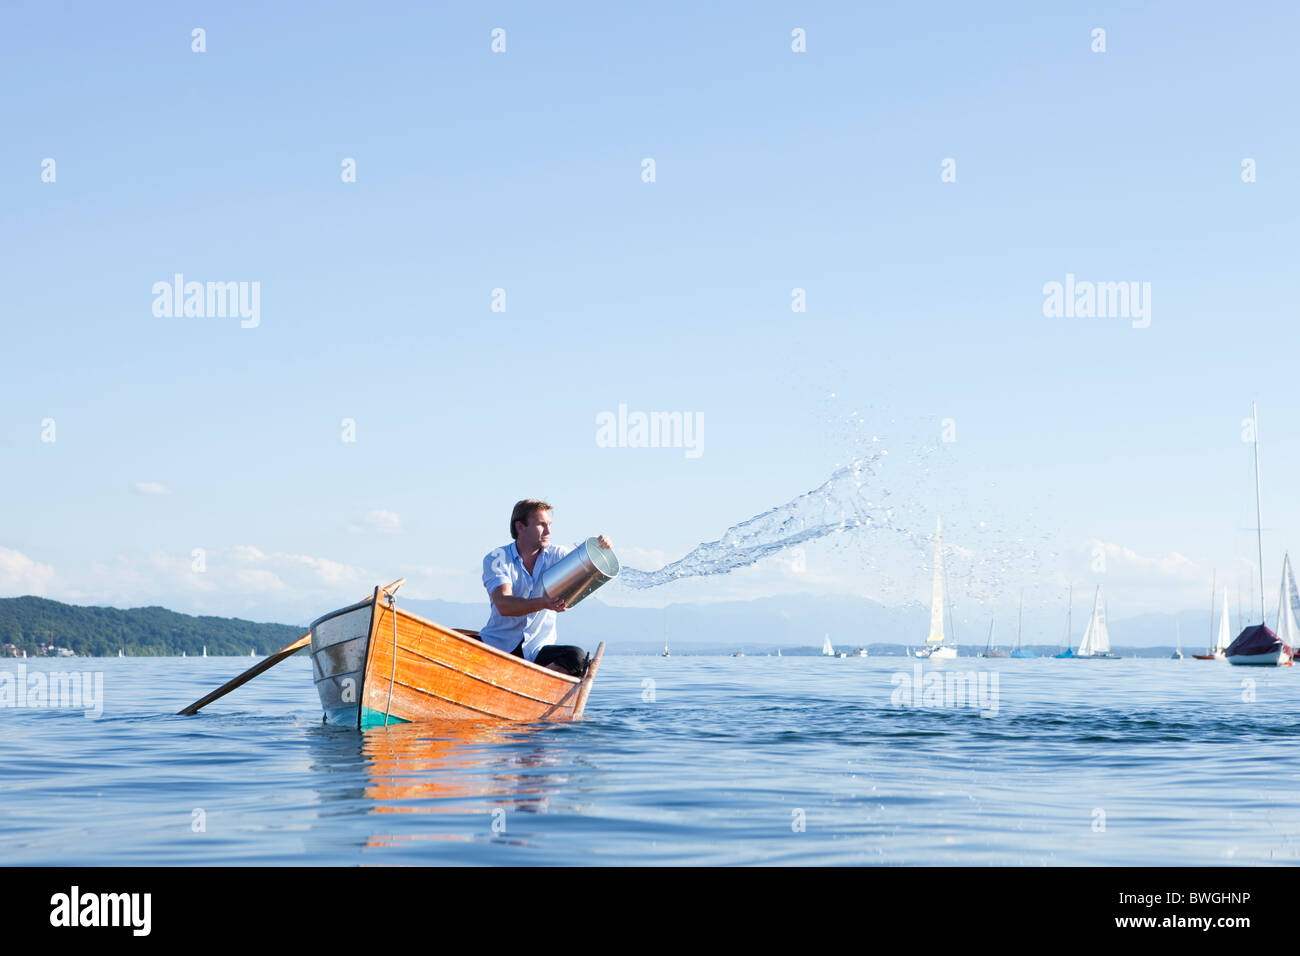 Throwing buckets of water ot ouf boat - Stock Image